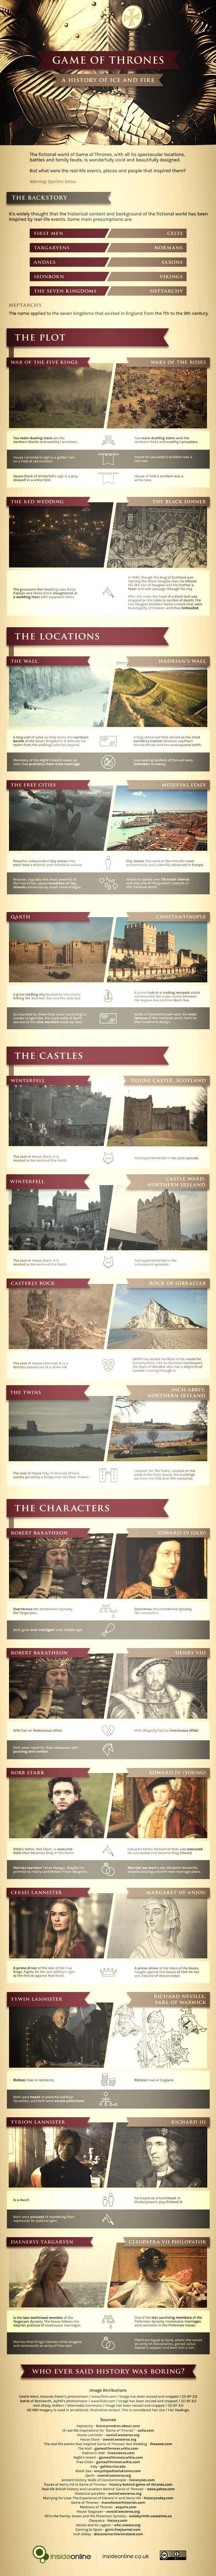 history of game of thrones